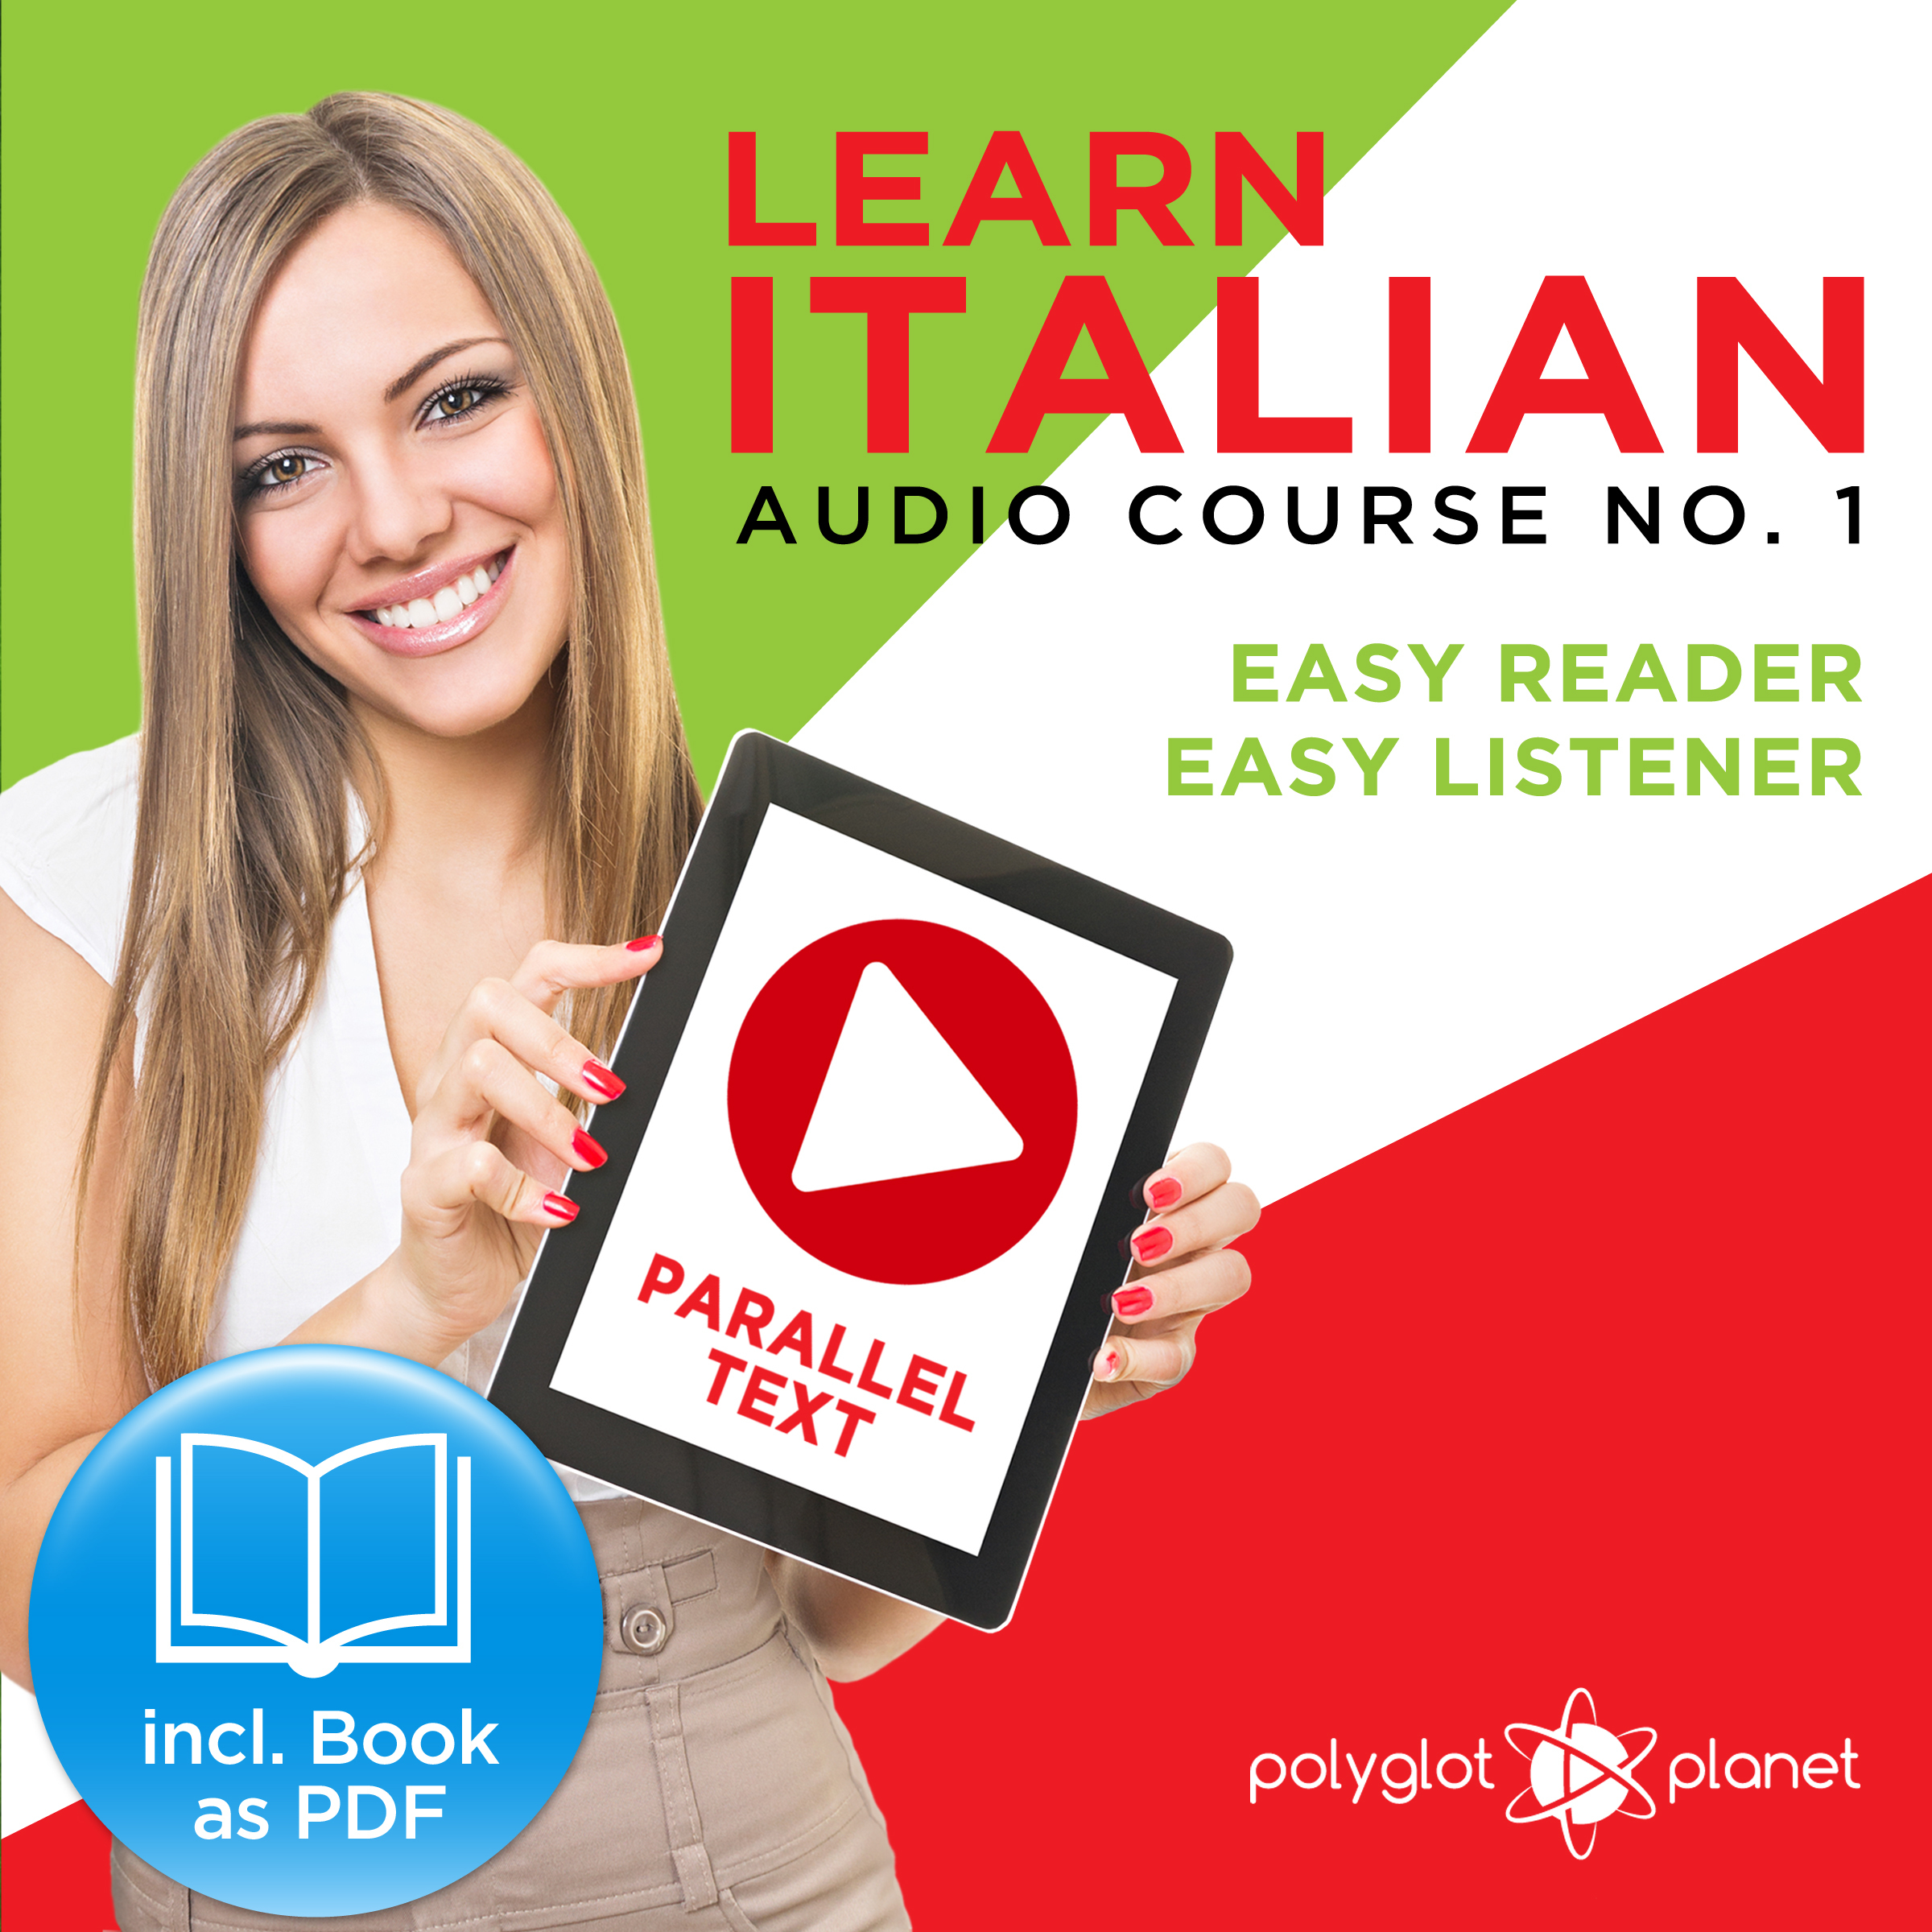 Printable Learn Italian - Easy Reader - Easy Listener Parallel Text Audio-Course No. 1 - The Italian Easy Reader - Easy Audio Learning Course Audiobook Cover Art